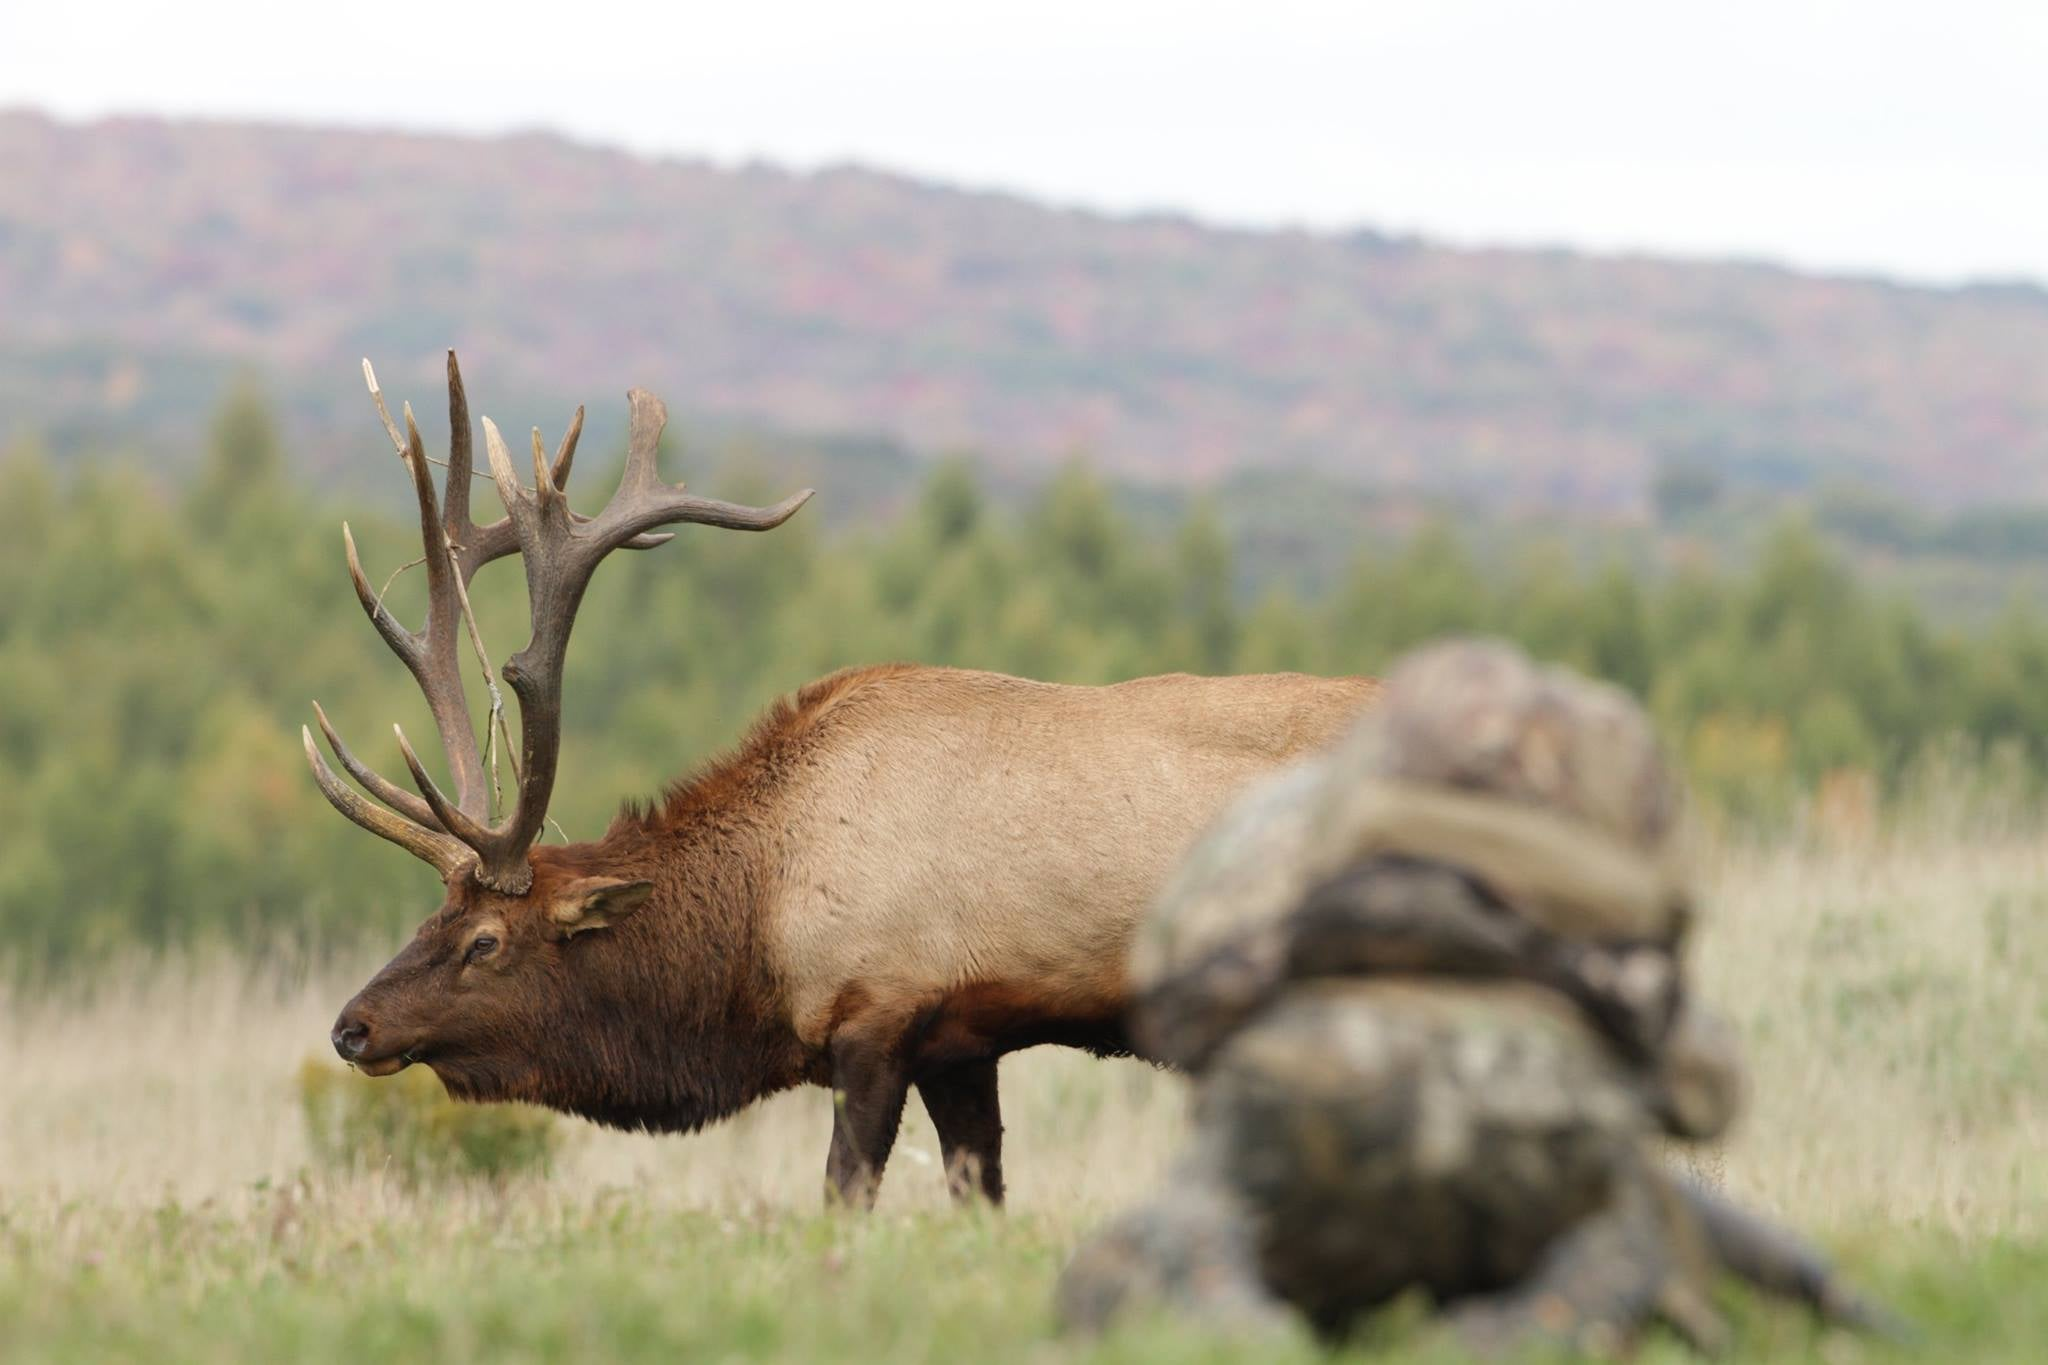 PA Locals Debate Whether Harvest of 'Iconic' Elk Was Fair